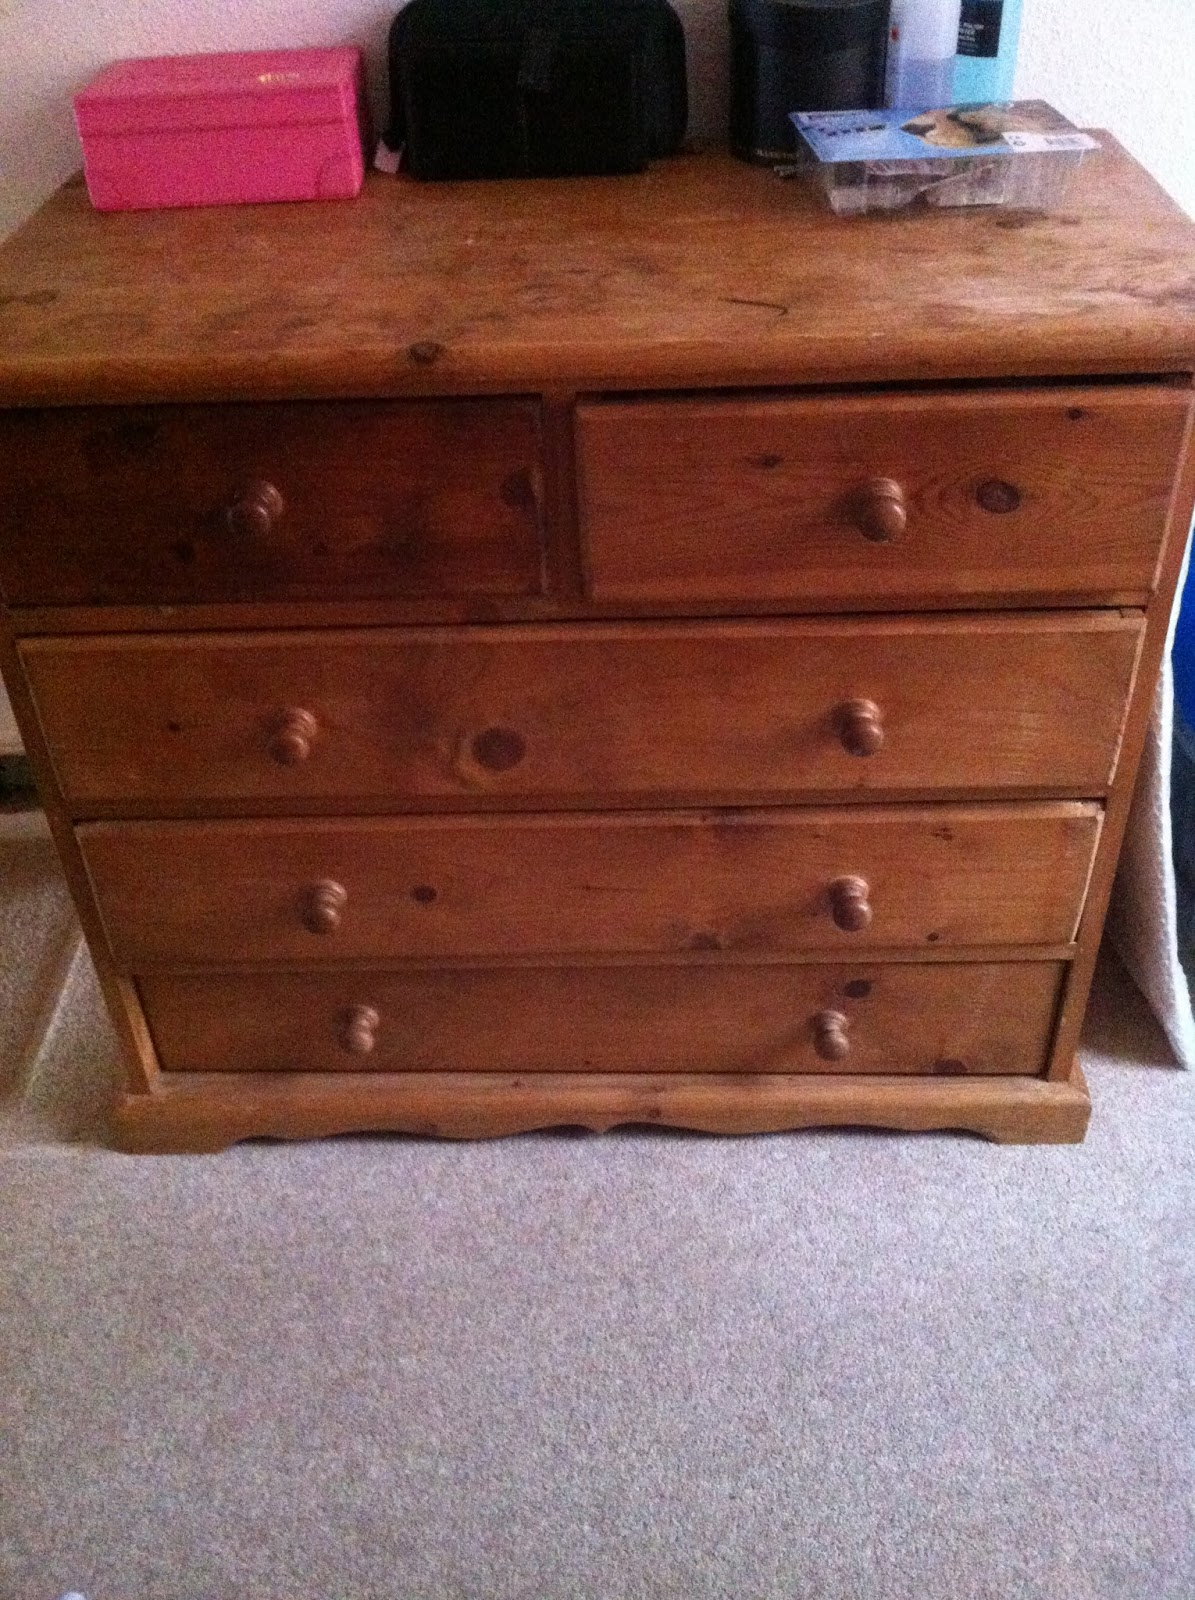 doyounoah My first attempt at upcycling furniture